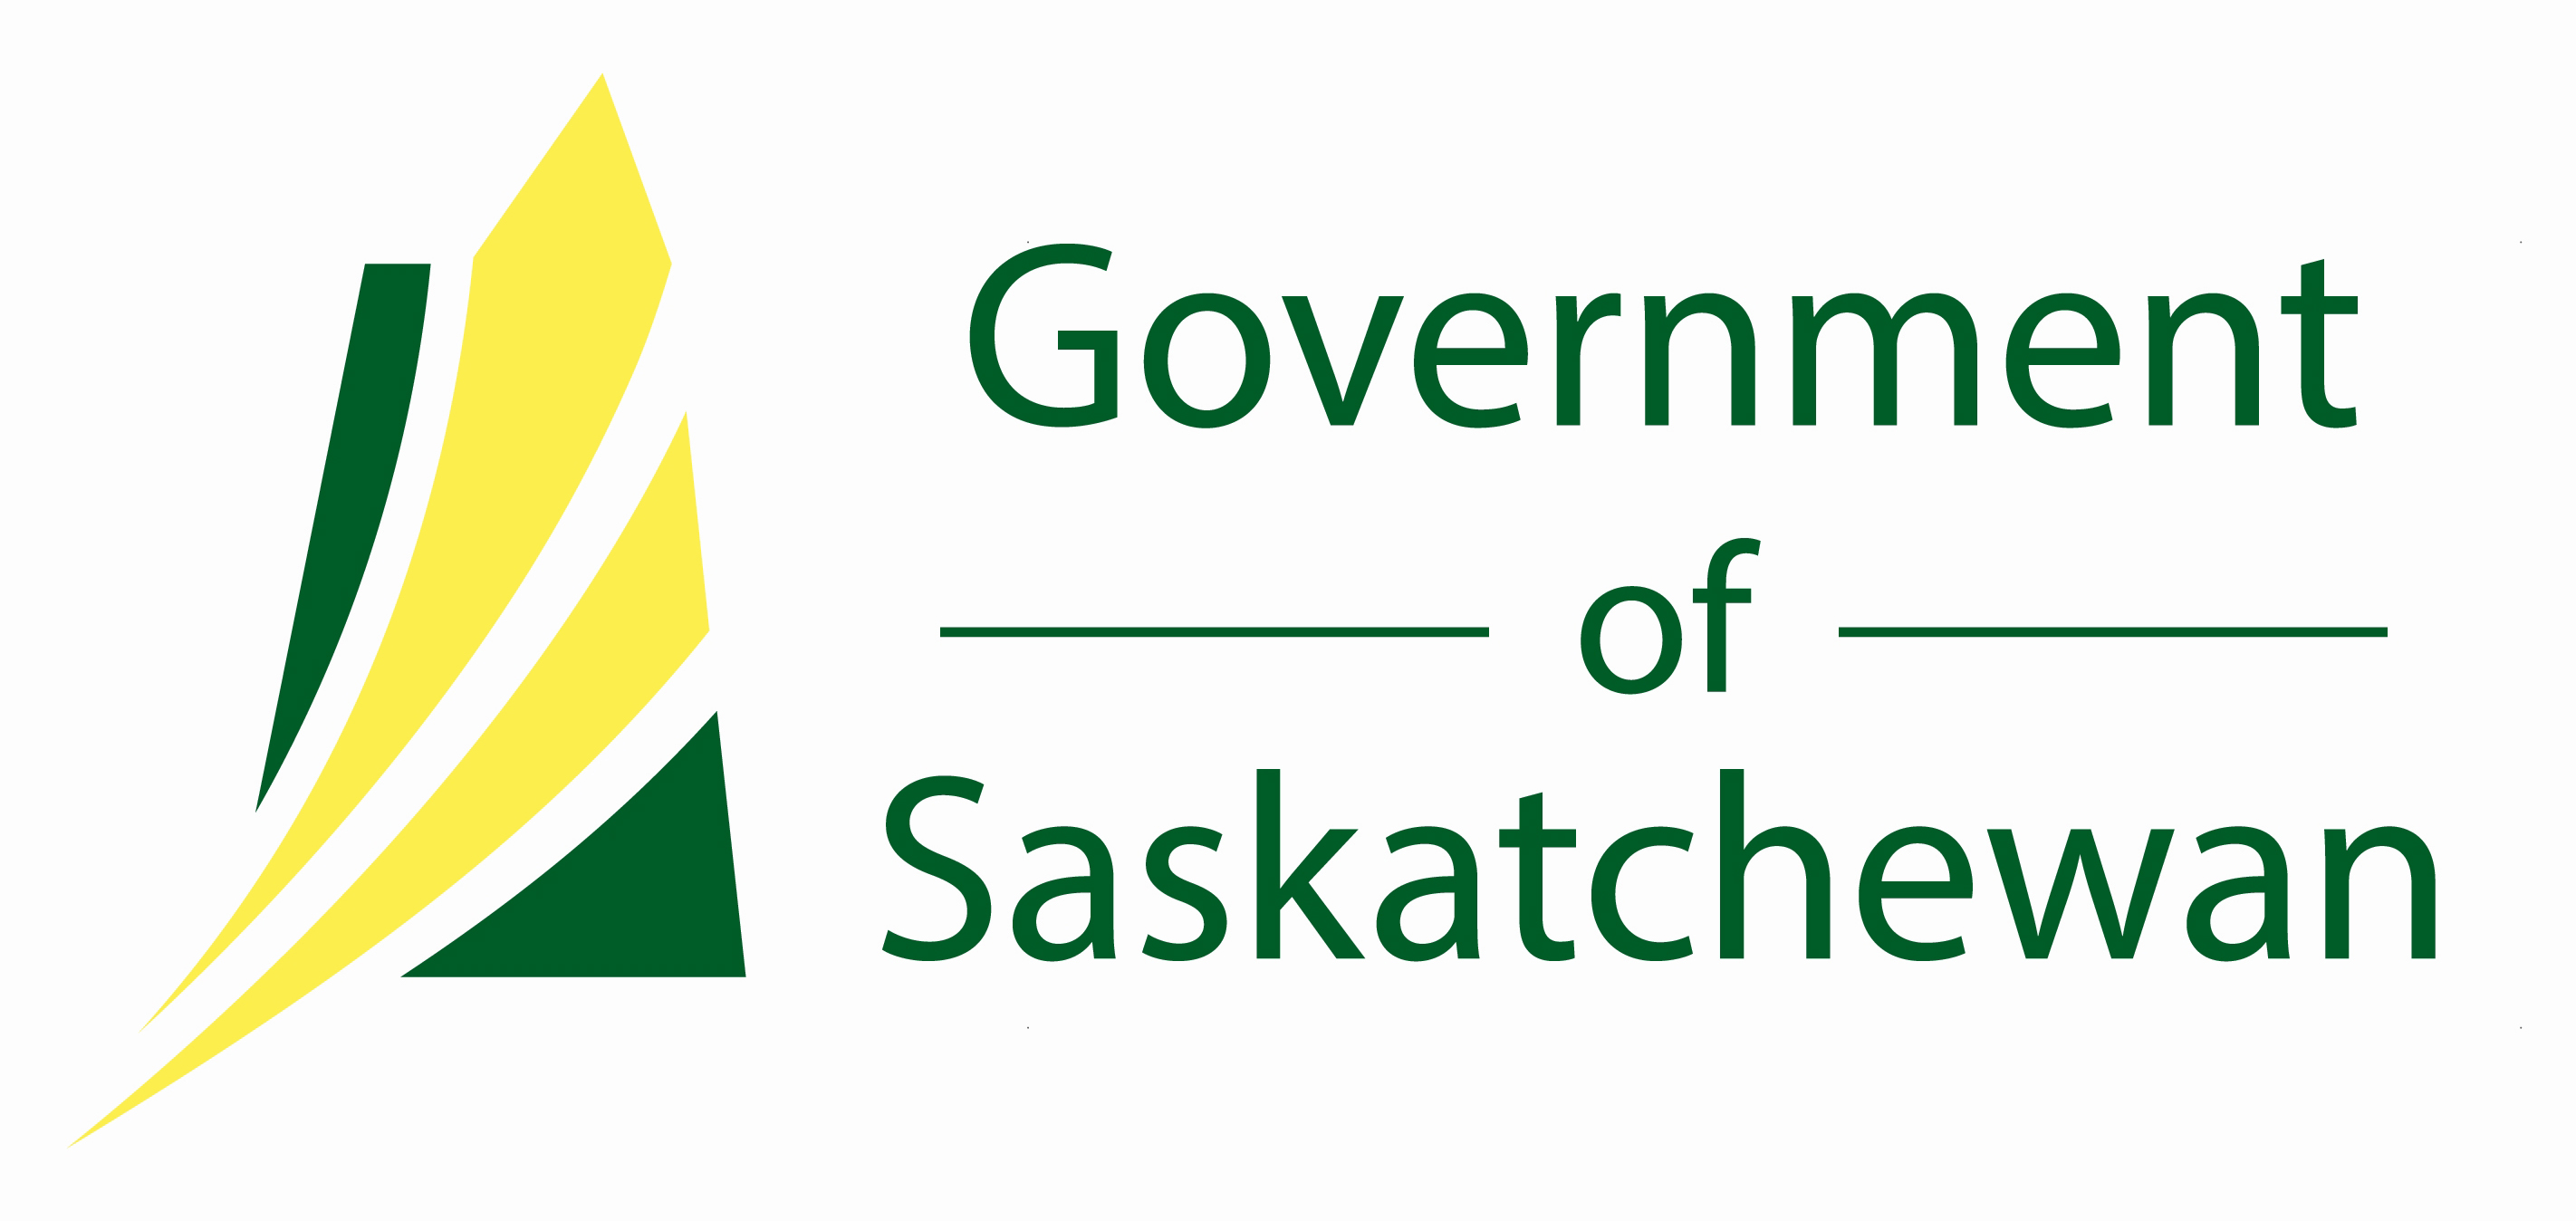 Government of Saskatchewan - Horizontal